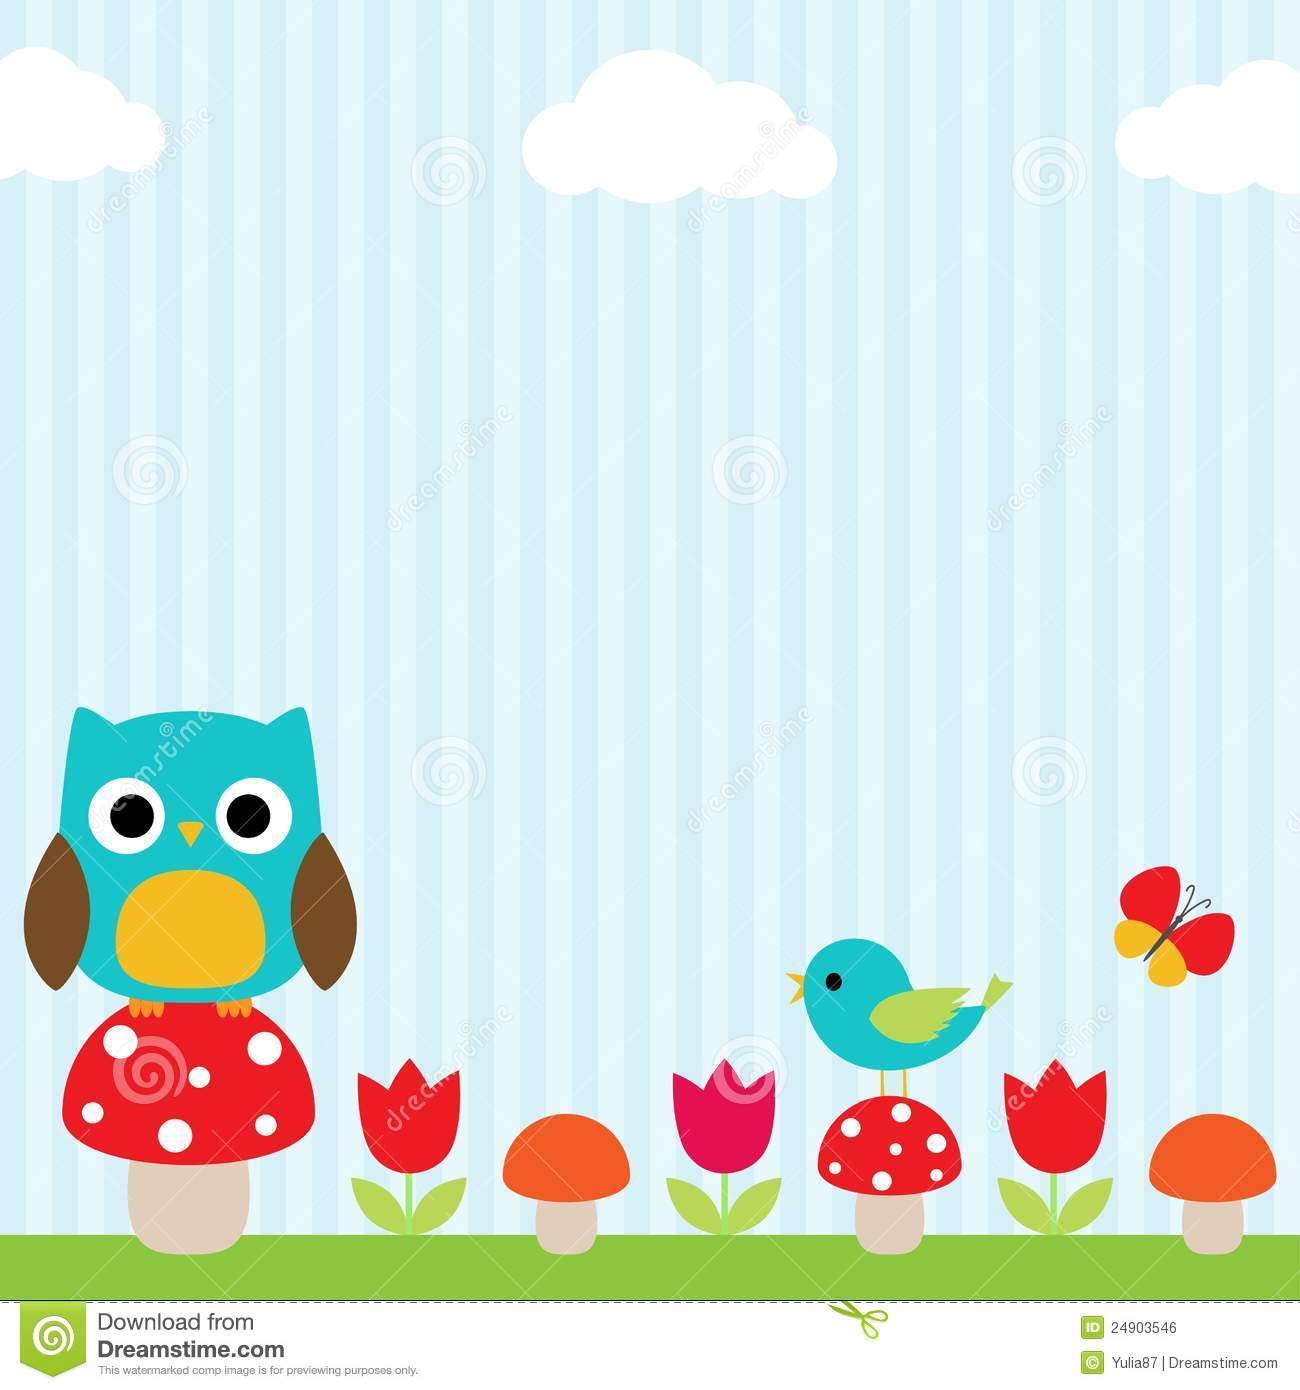 Baby Girl Nursery Flower Wallpaper Owl Background Royalty Free Stock Image Image 24903546